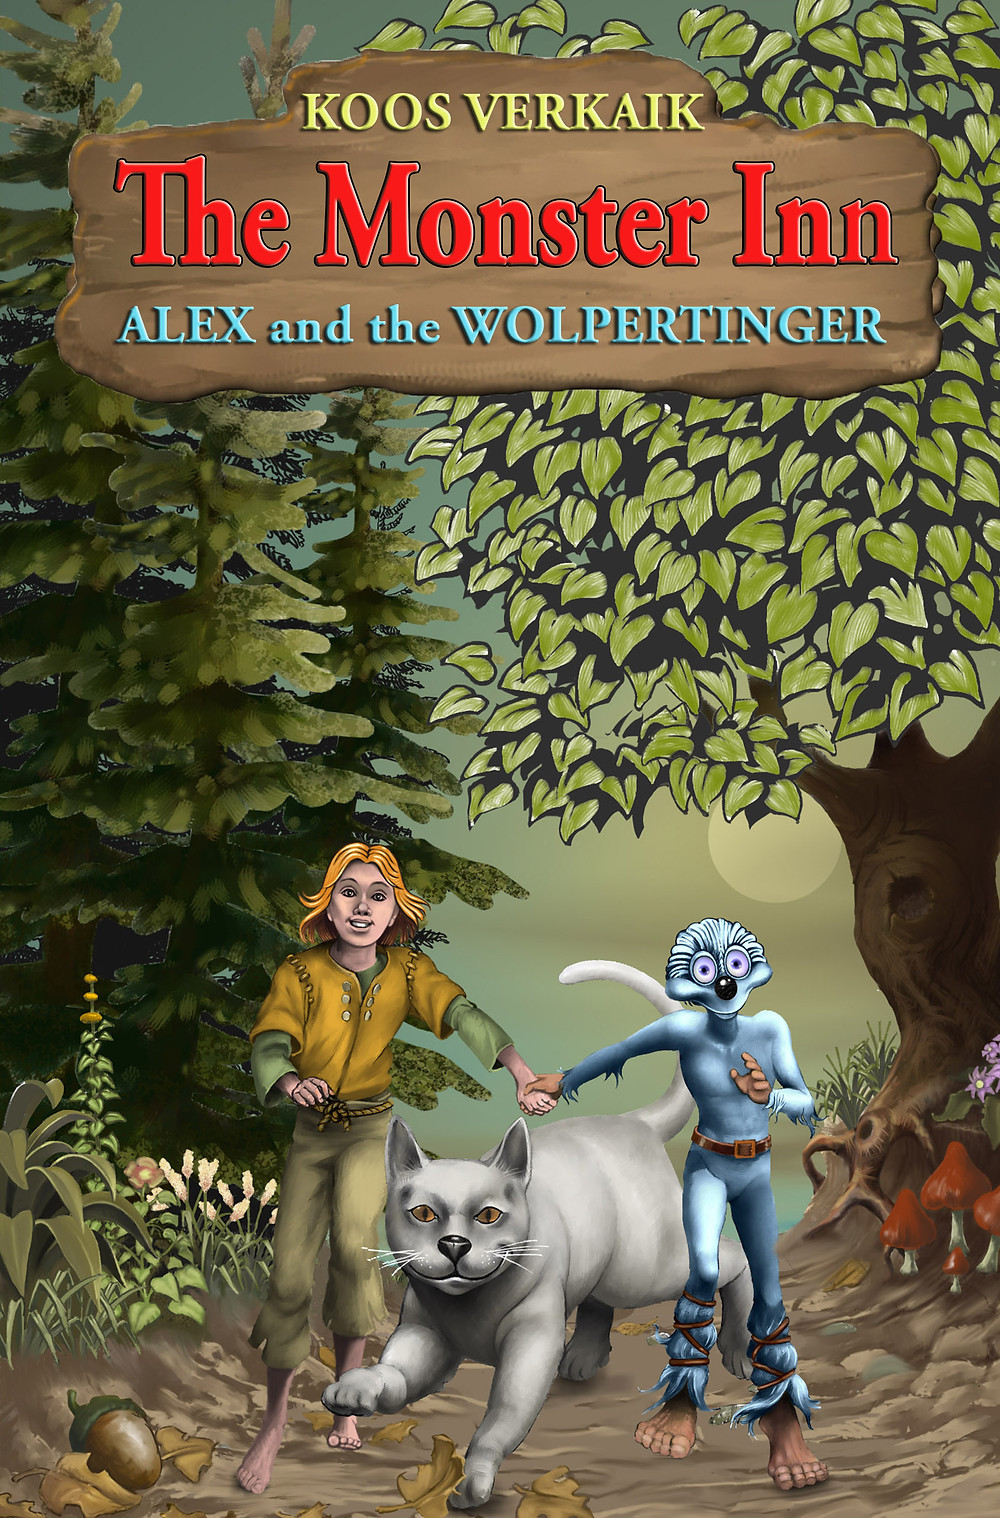 The Monster Inn, Alex and the Wolpertinger, Koos Verkaik, author interview, freelance book editor, affordable book editor, wattpad editor, ebook editor, affordable book editing services